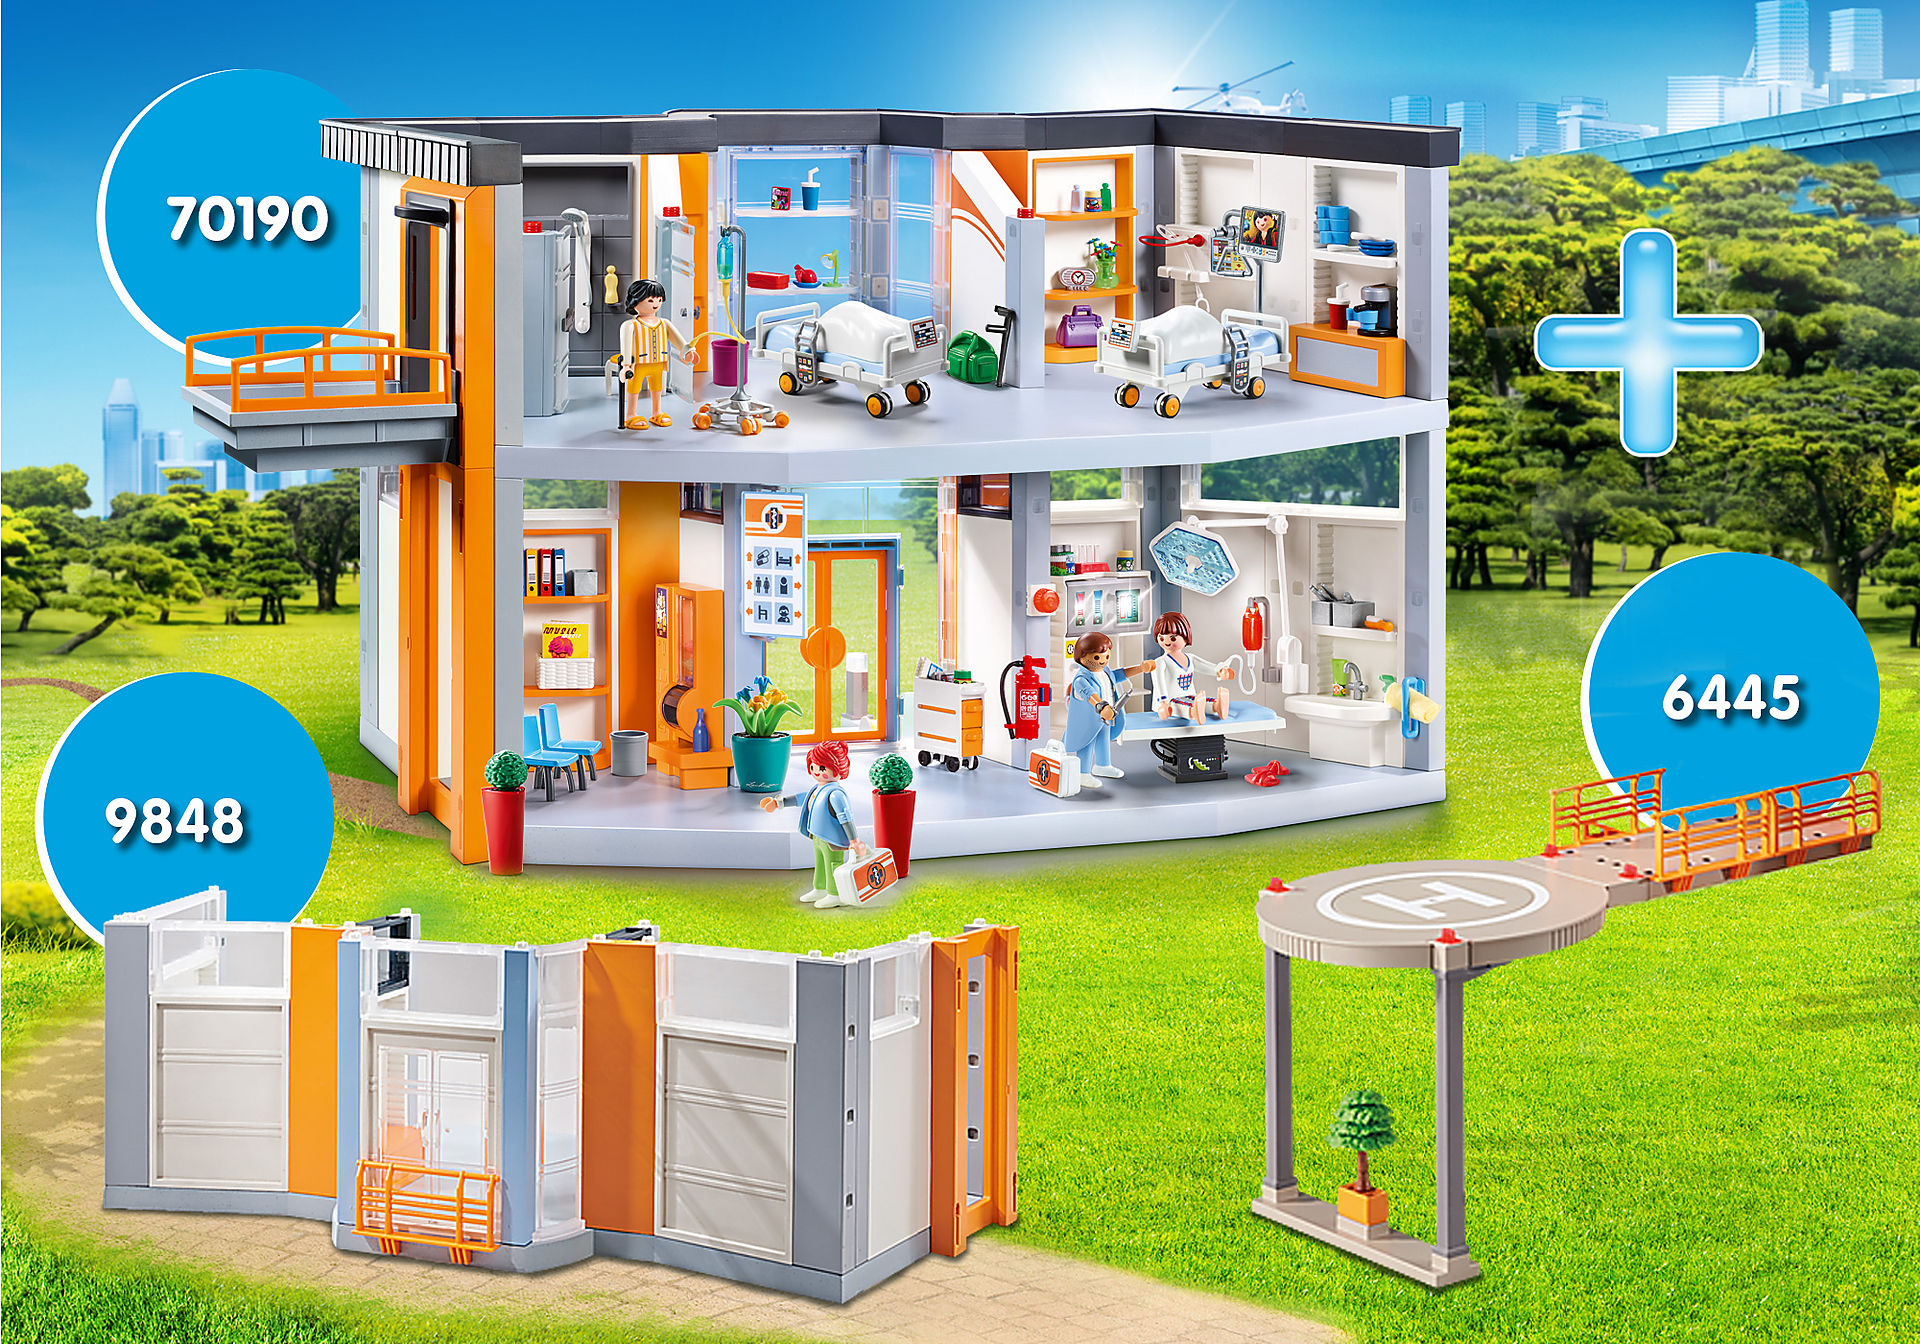 http://media.playmobil.com/i/playmobil/PM1911P_product_detail/Bundle Krankenhaus